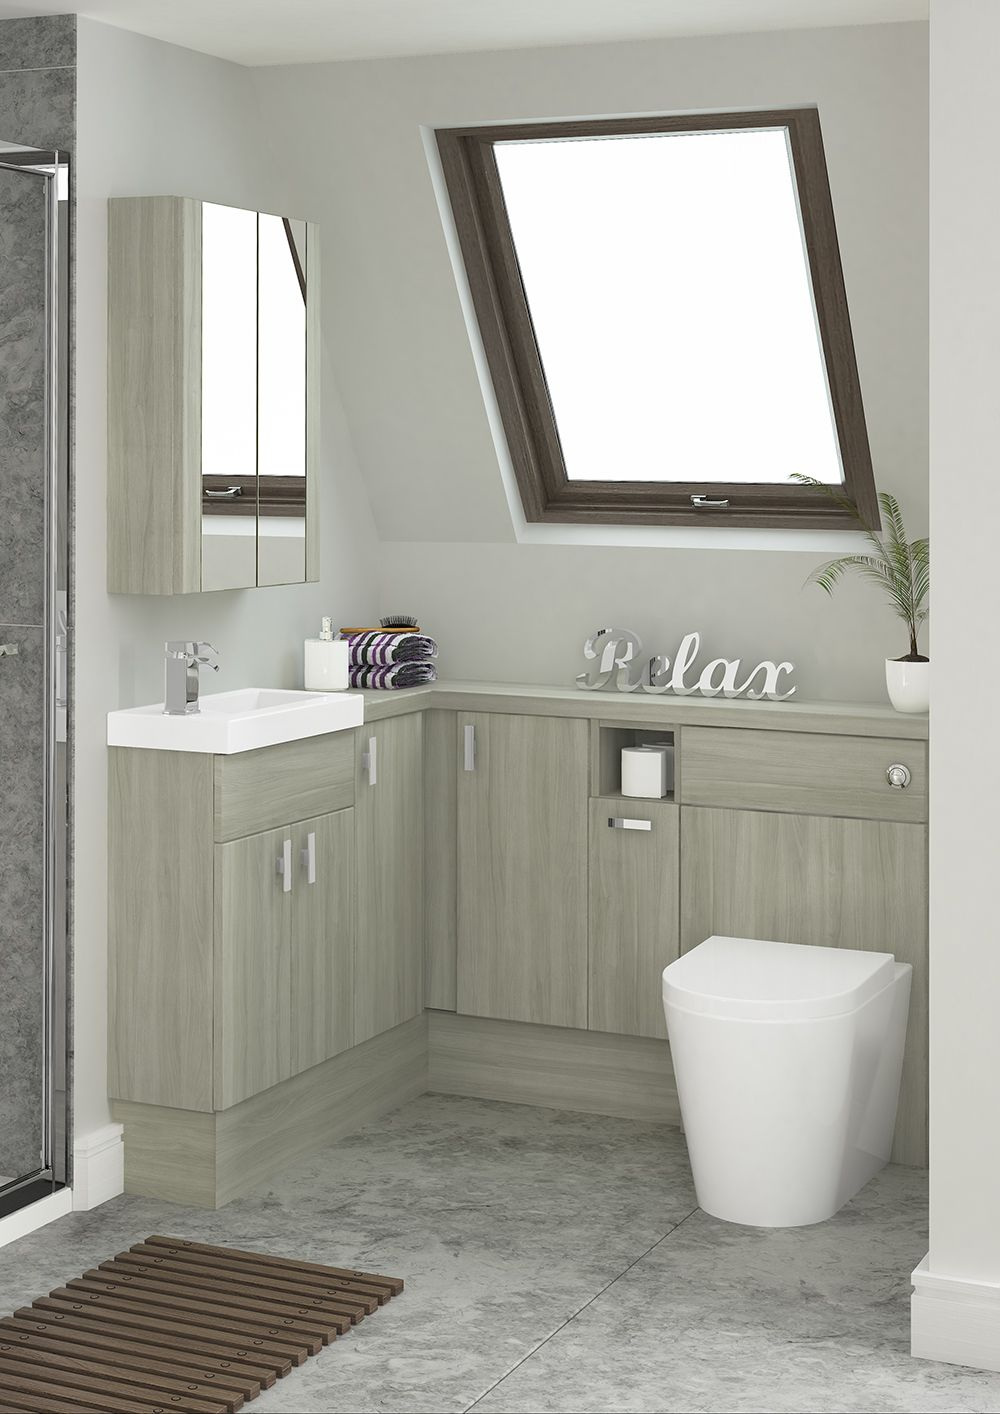 Our Range Of Slimline Fitted Furniture Is Designed To Create Stylish with measurements 1000 X 1414